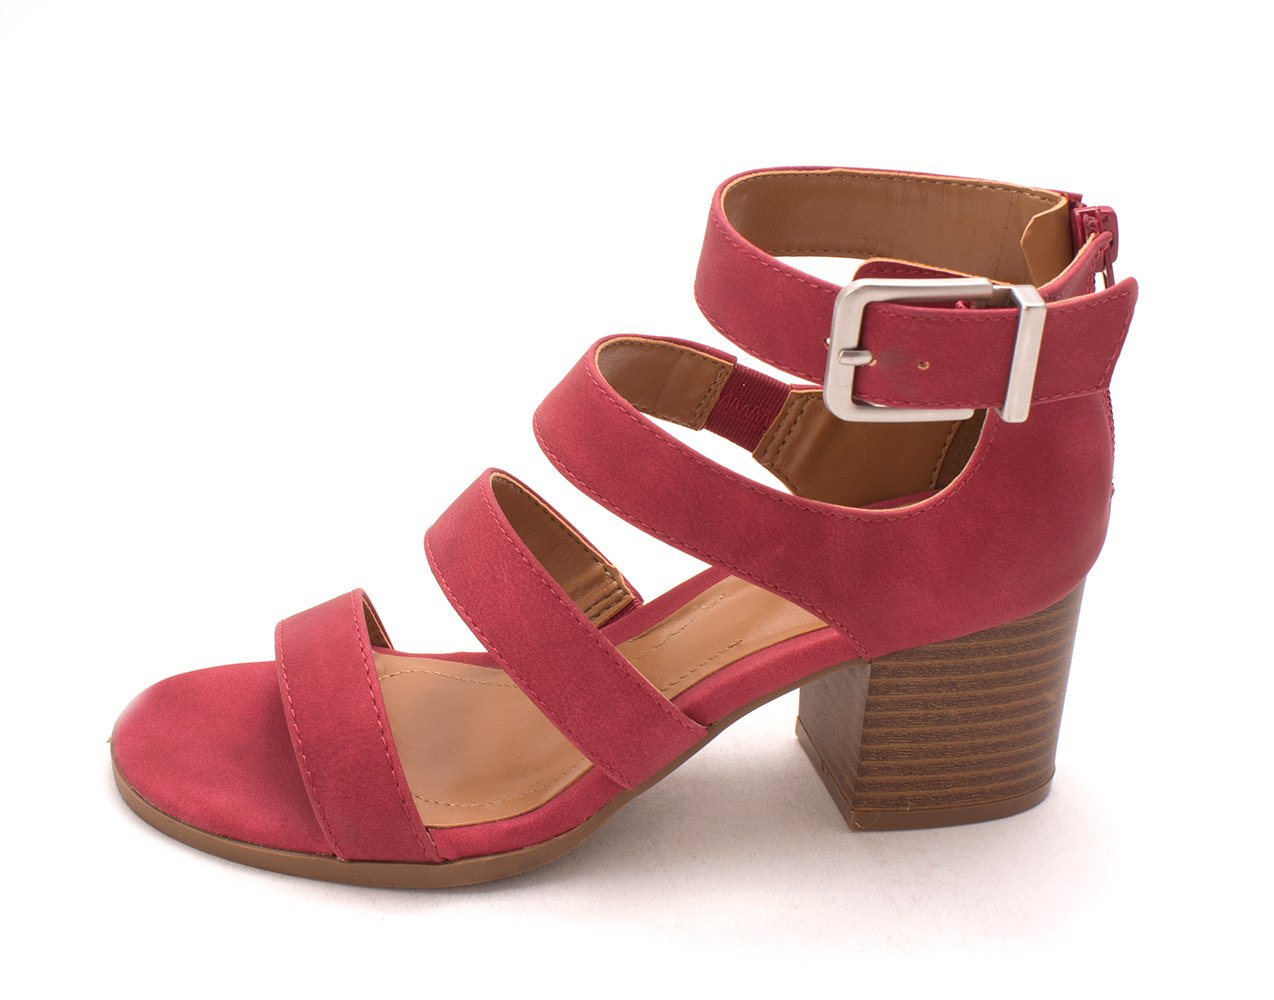 Style & Co.. Womens Naomii Open Toe Casual Strappy Sandals, Dark Cherry, Size 6.0 by Style & Co.